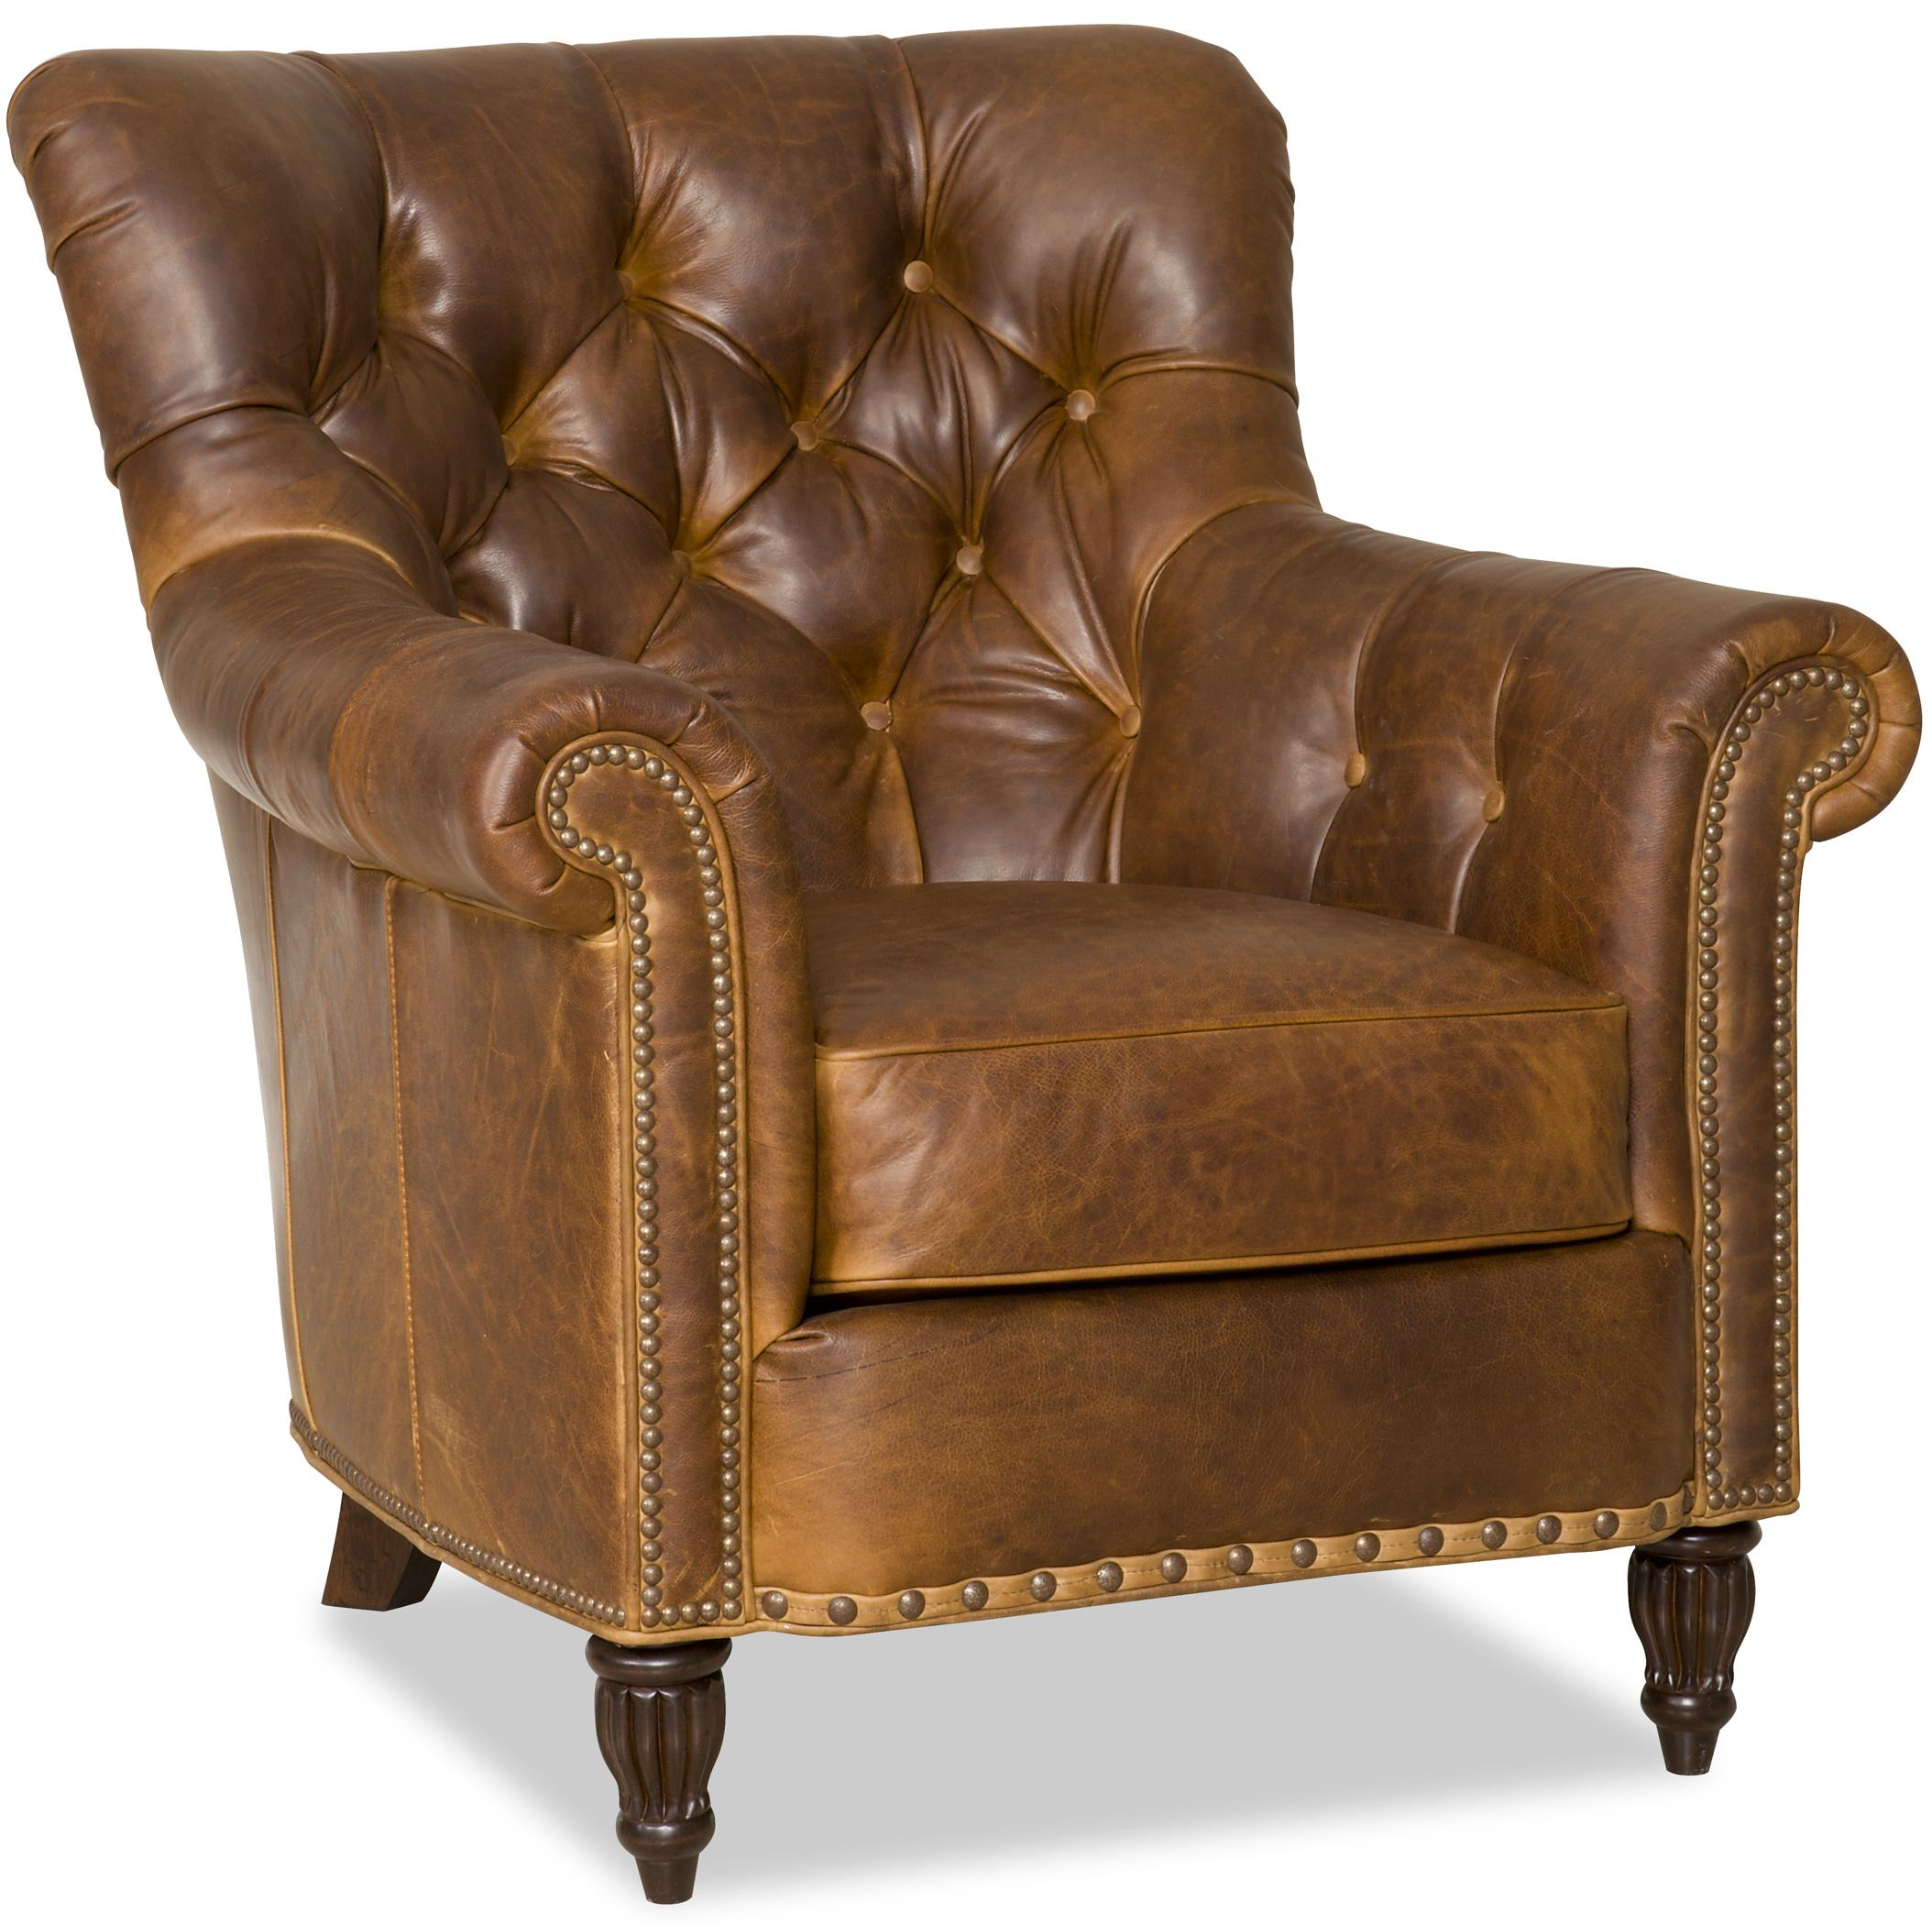 Beau Bradington Young Kirby Classic Tufted Reading Chair | Belfort Furniture |  Upholstered Chair